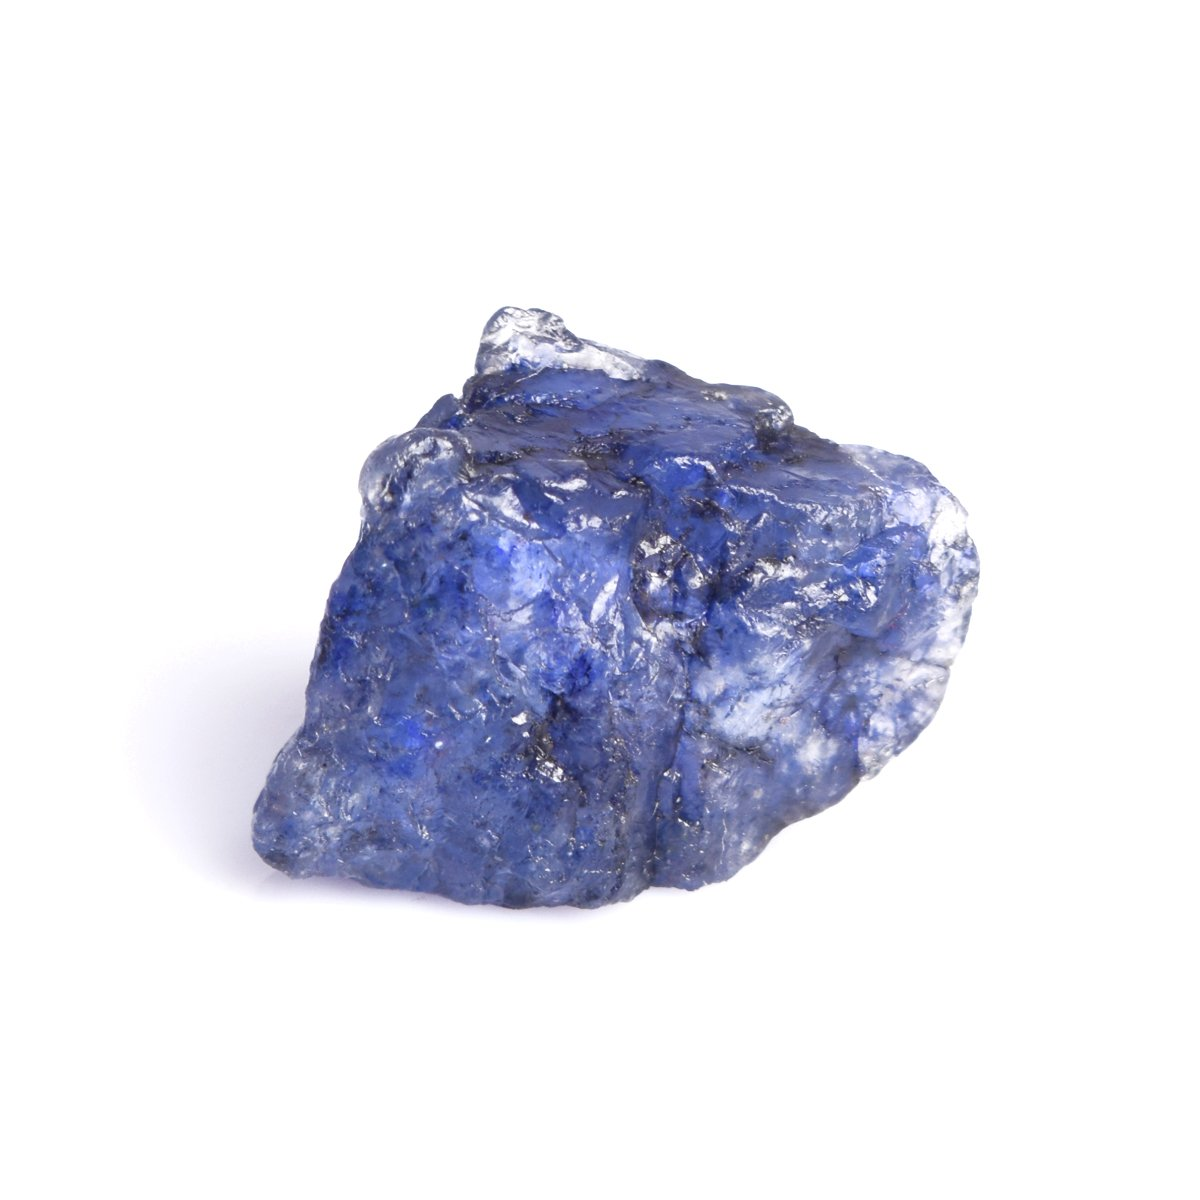 18.90 Ct Rough Raw Sapphire Rock Crystals Natural Certified Blue Sapphire for Jewelry Making DP-717 hamlet e commerce